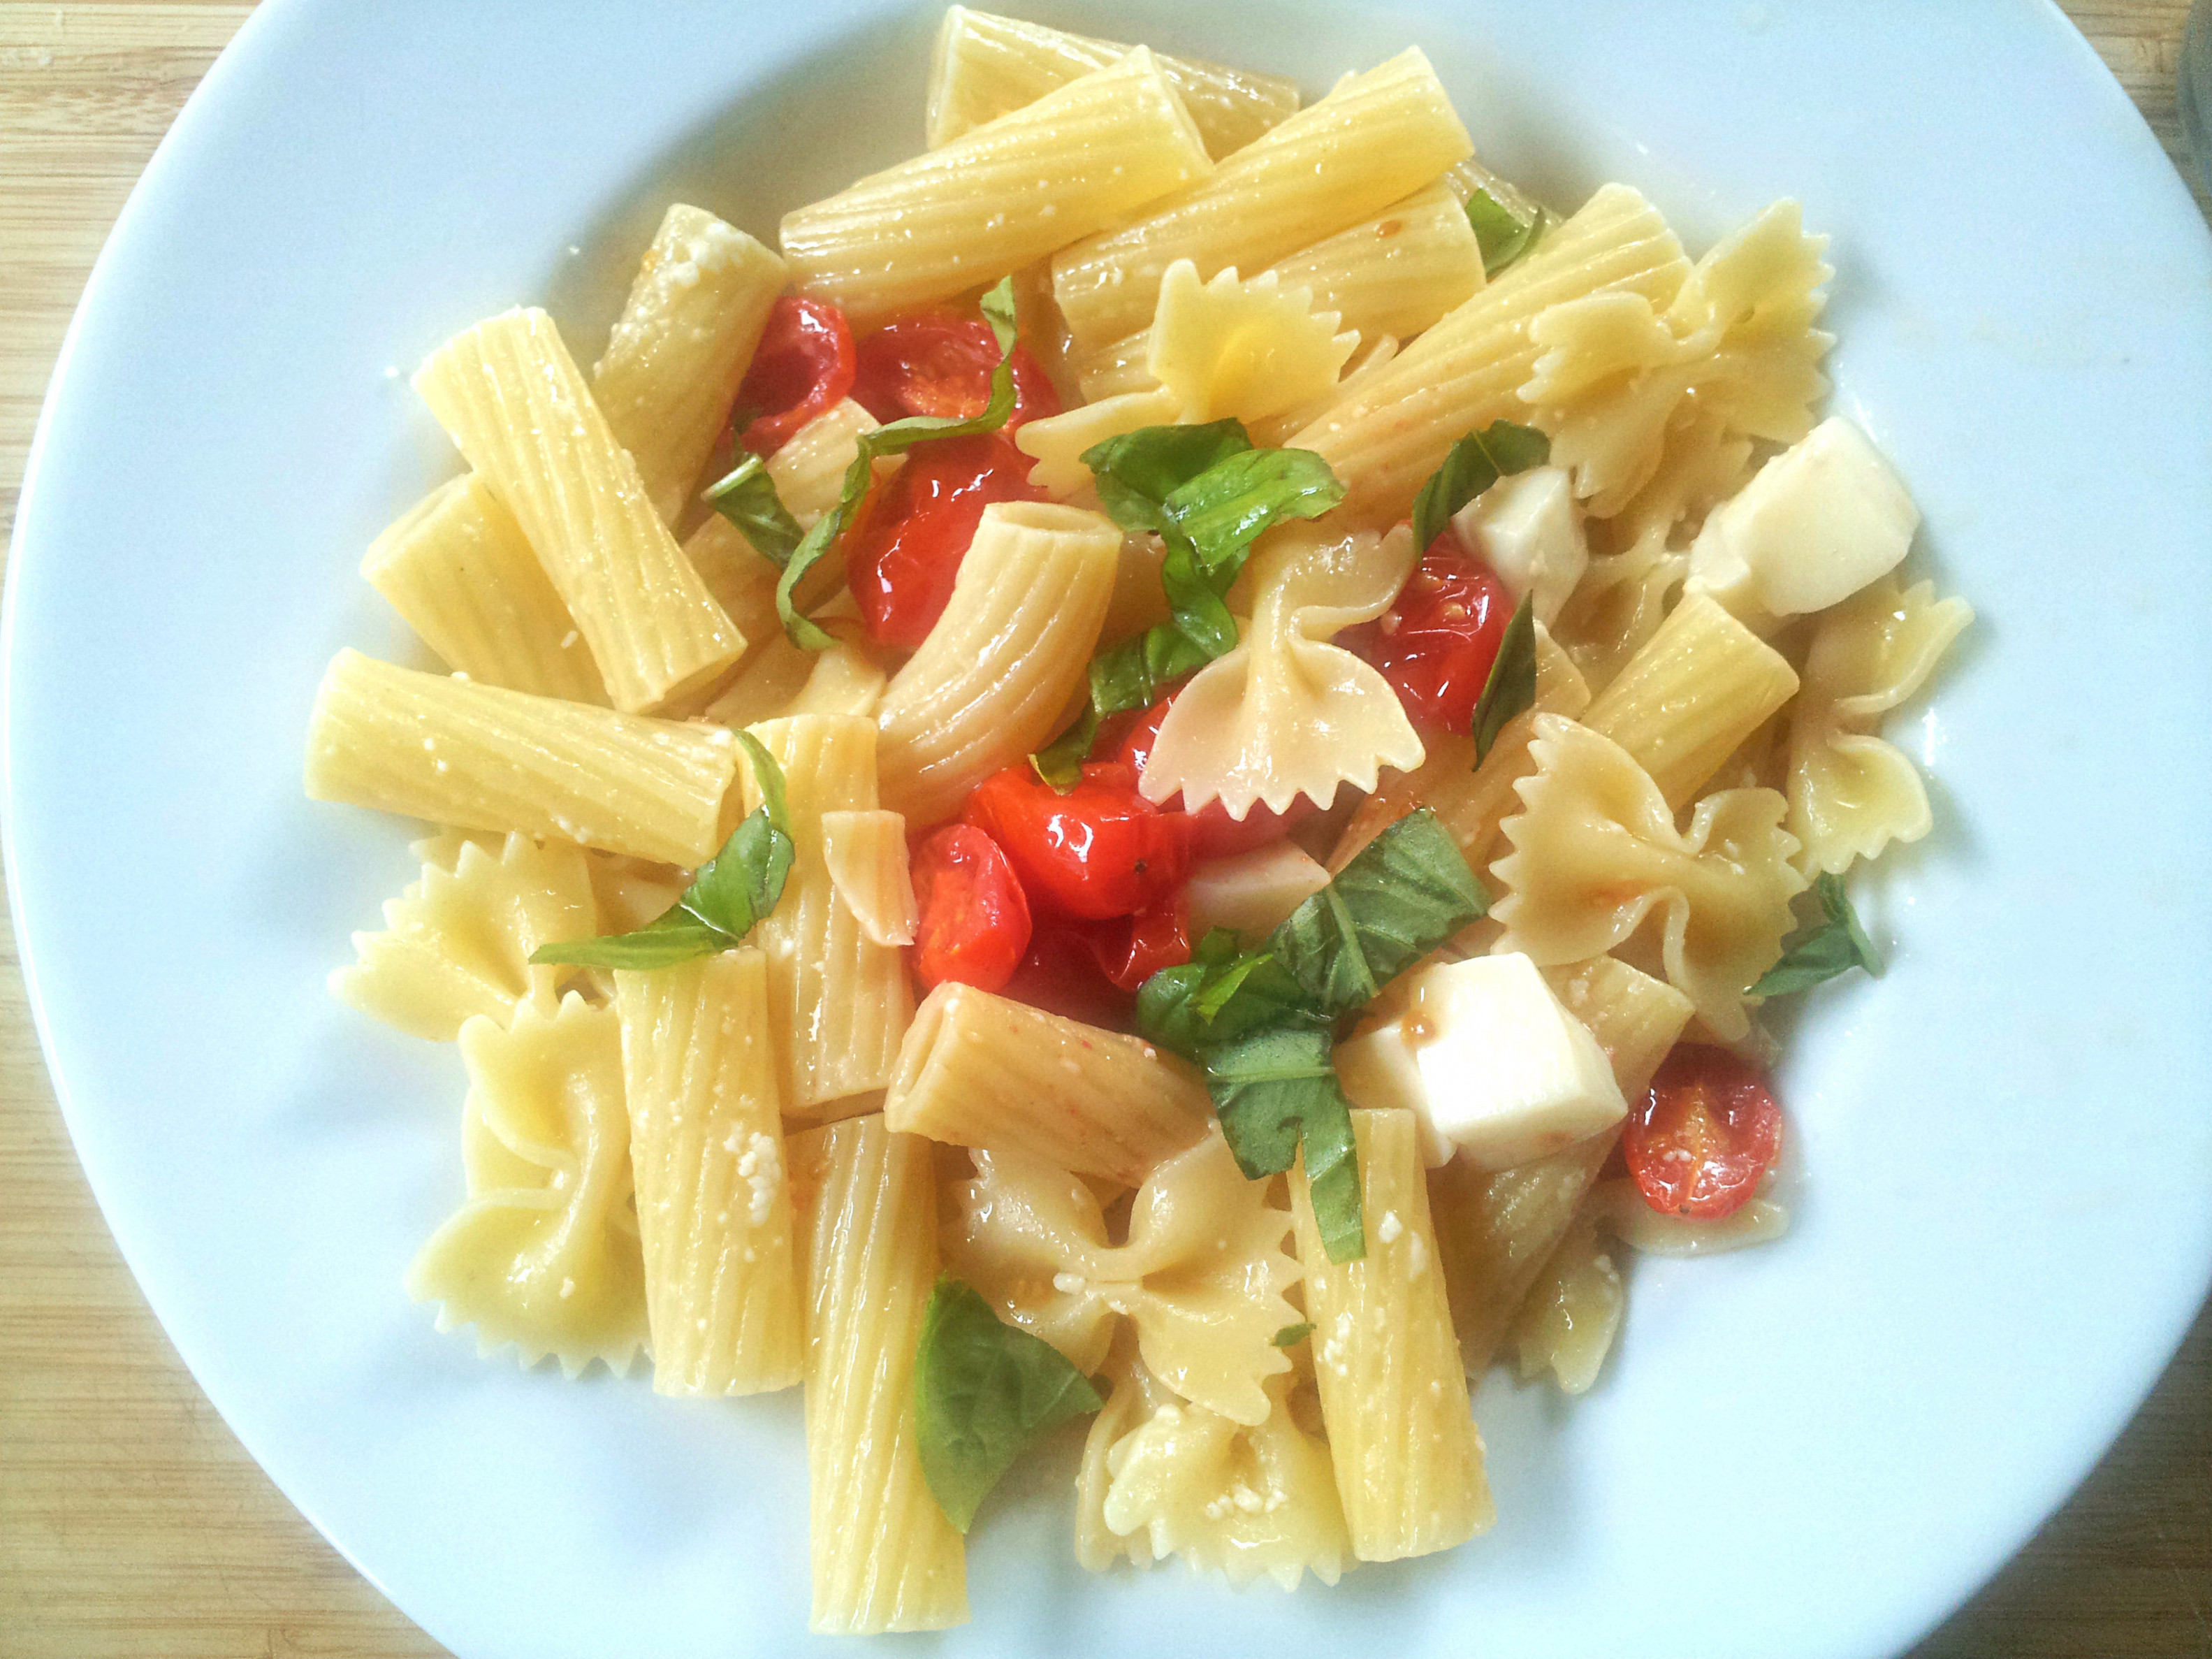 Pasta tricolore (Italian flag pasta) recipe - All recipes UK